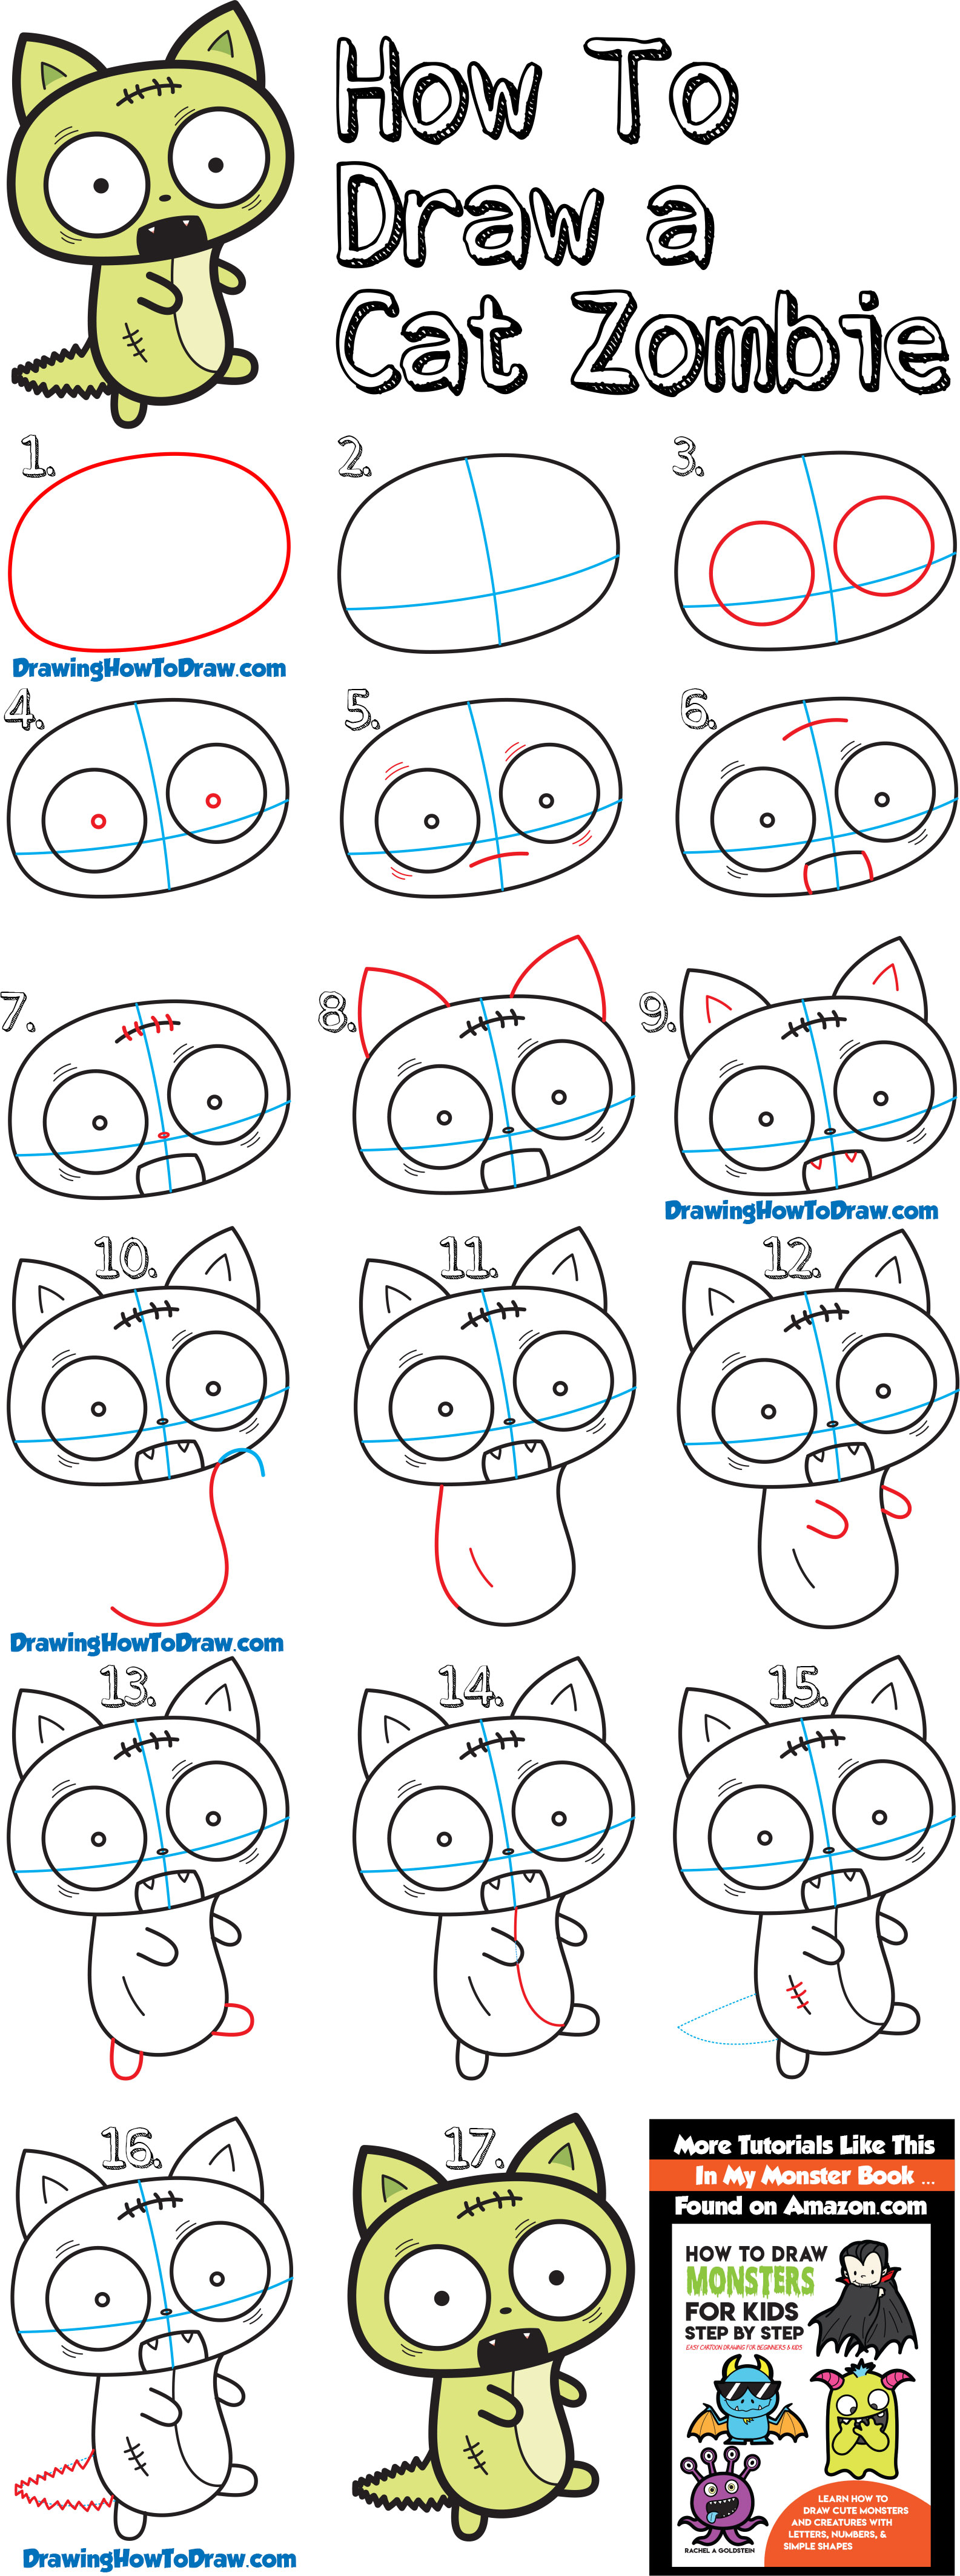 Learn How to Draw a Chibi / Kawaii Style Cat Zombie for Halloween Simple Steps Drawing Lesson for Kids & Beginners